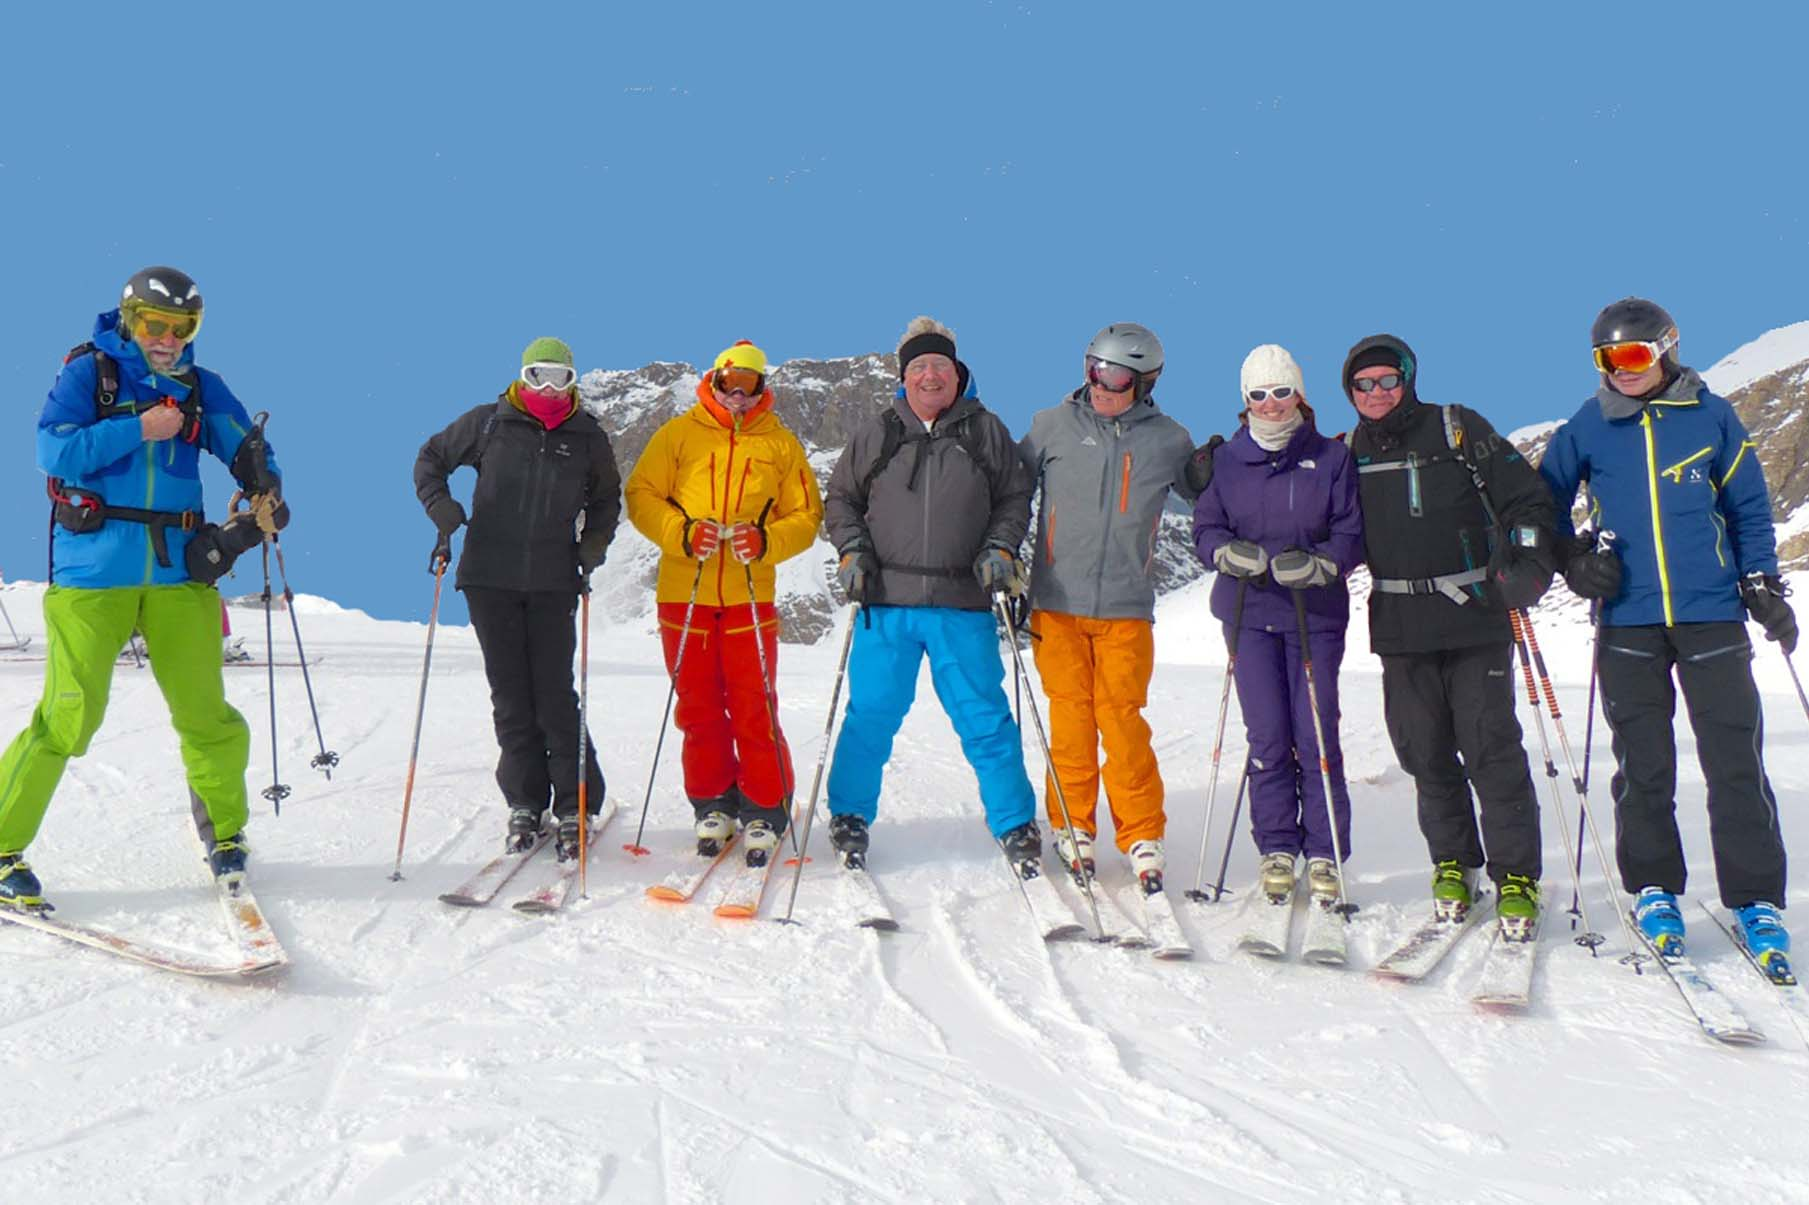 YSE friends skiing